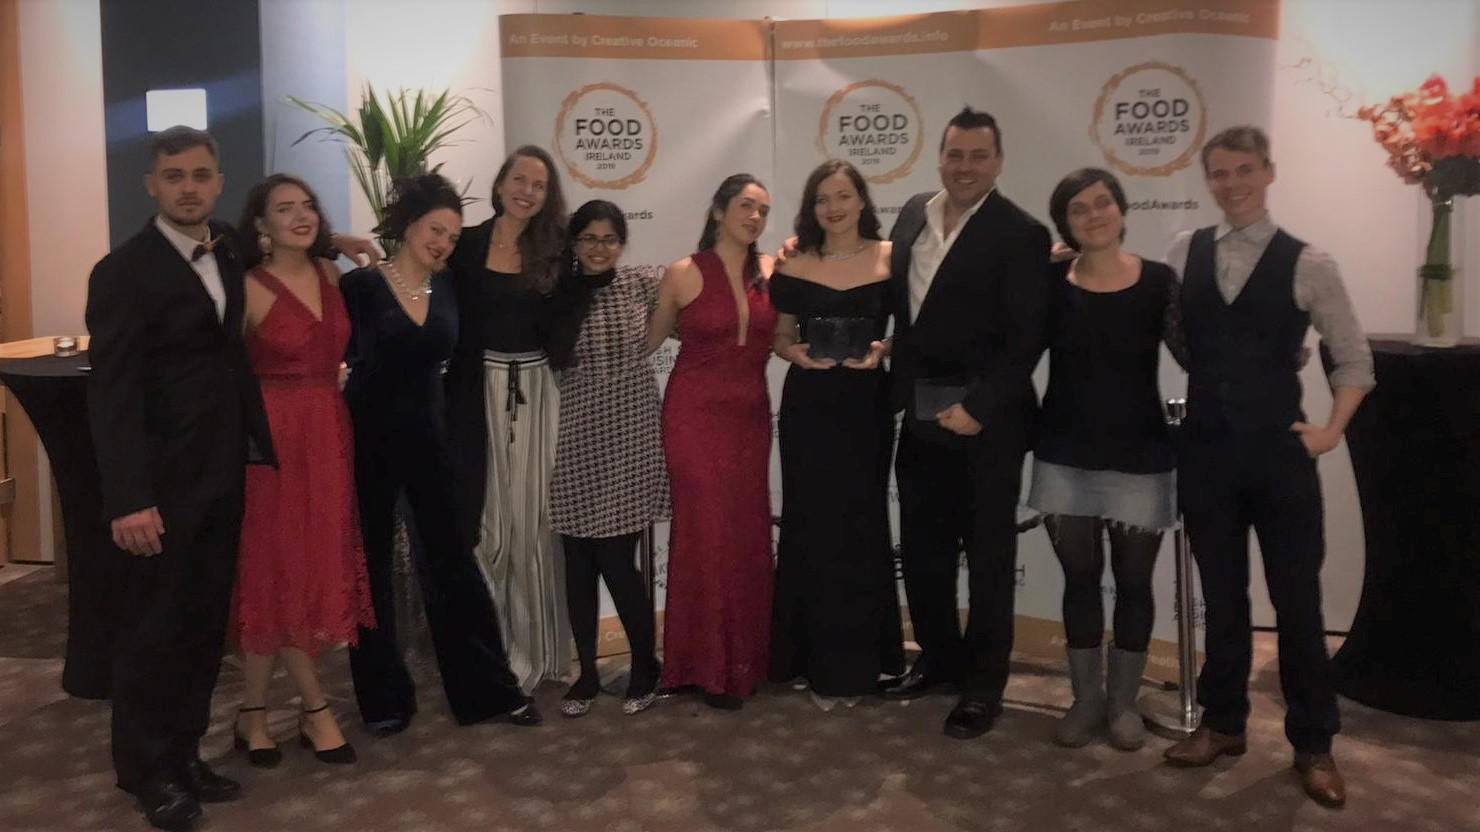 Food Awards 2019 Veginity Team 2